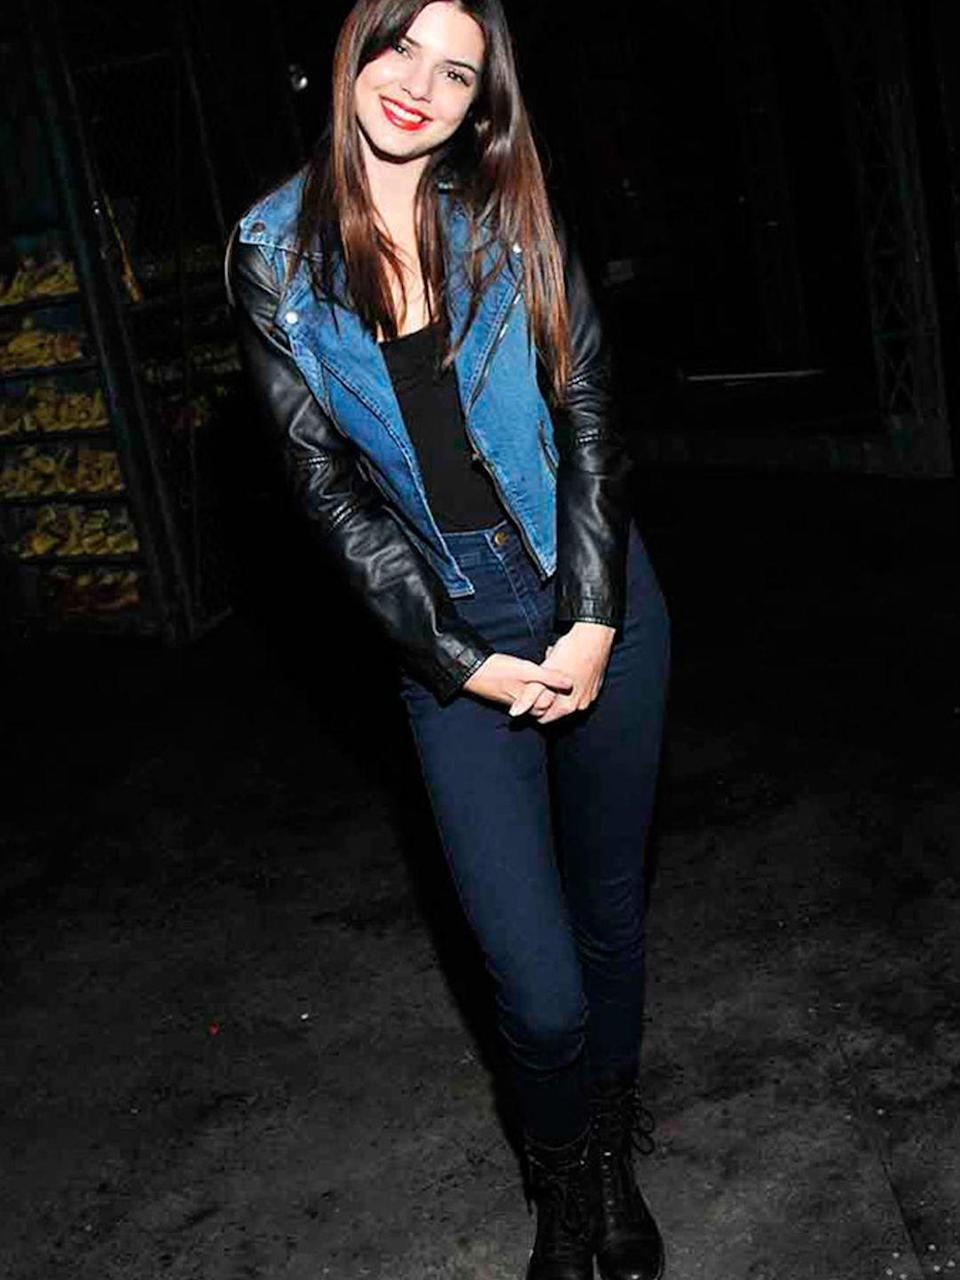 <p>Backstage at the Kinky Boots musical on Broadway</p>